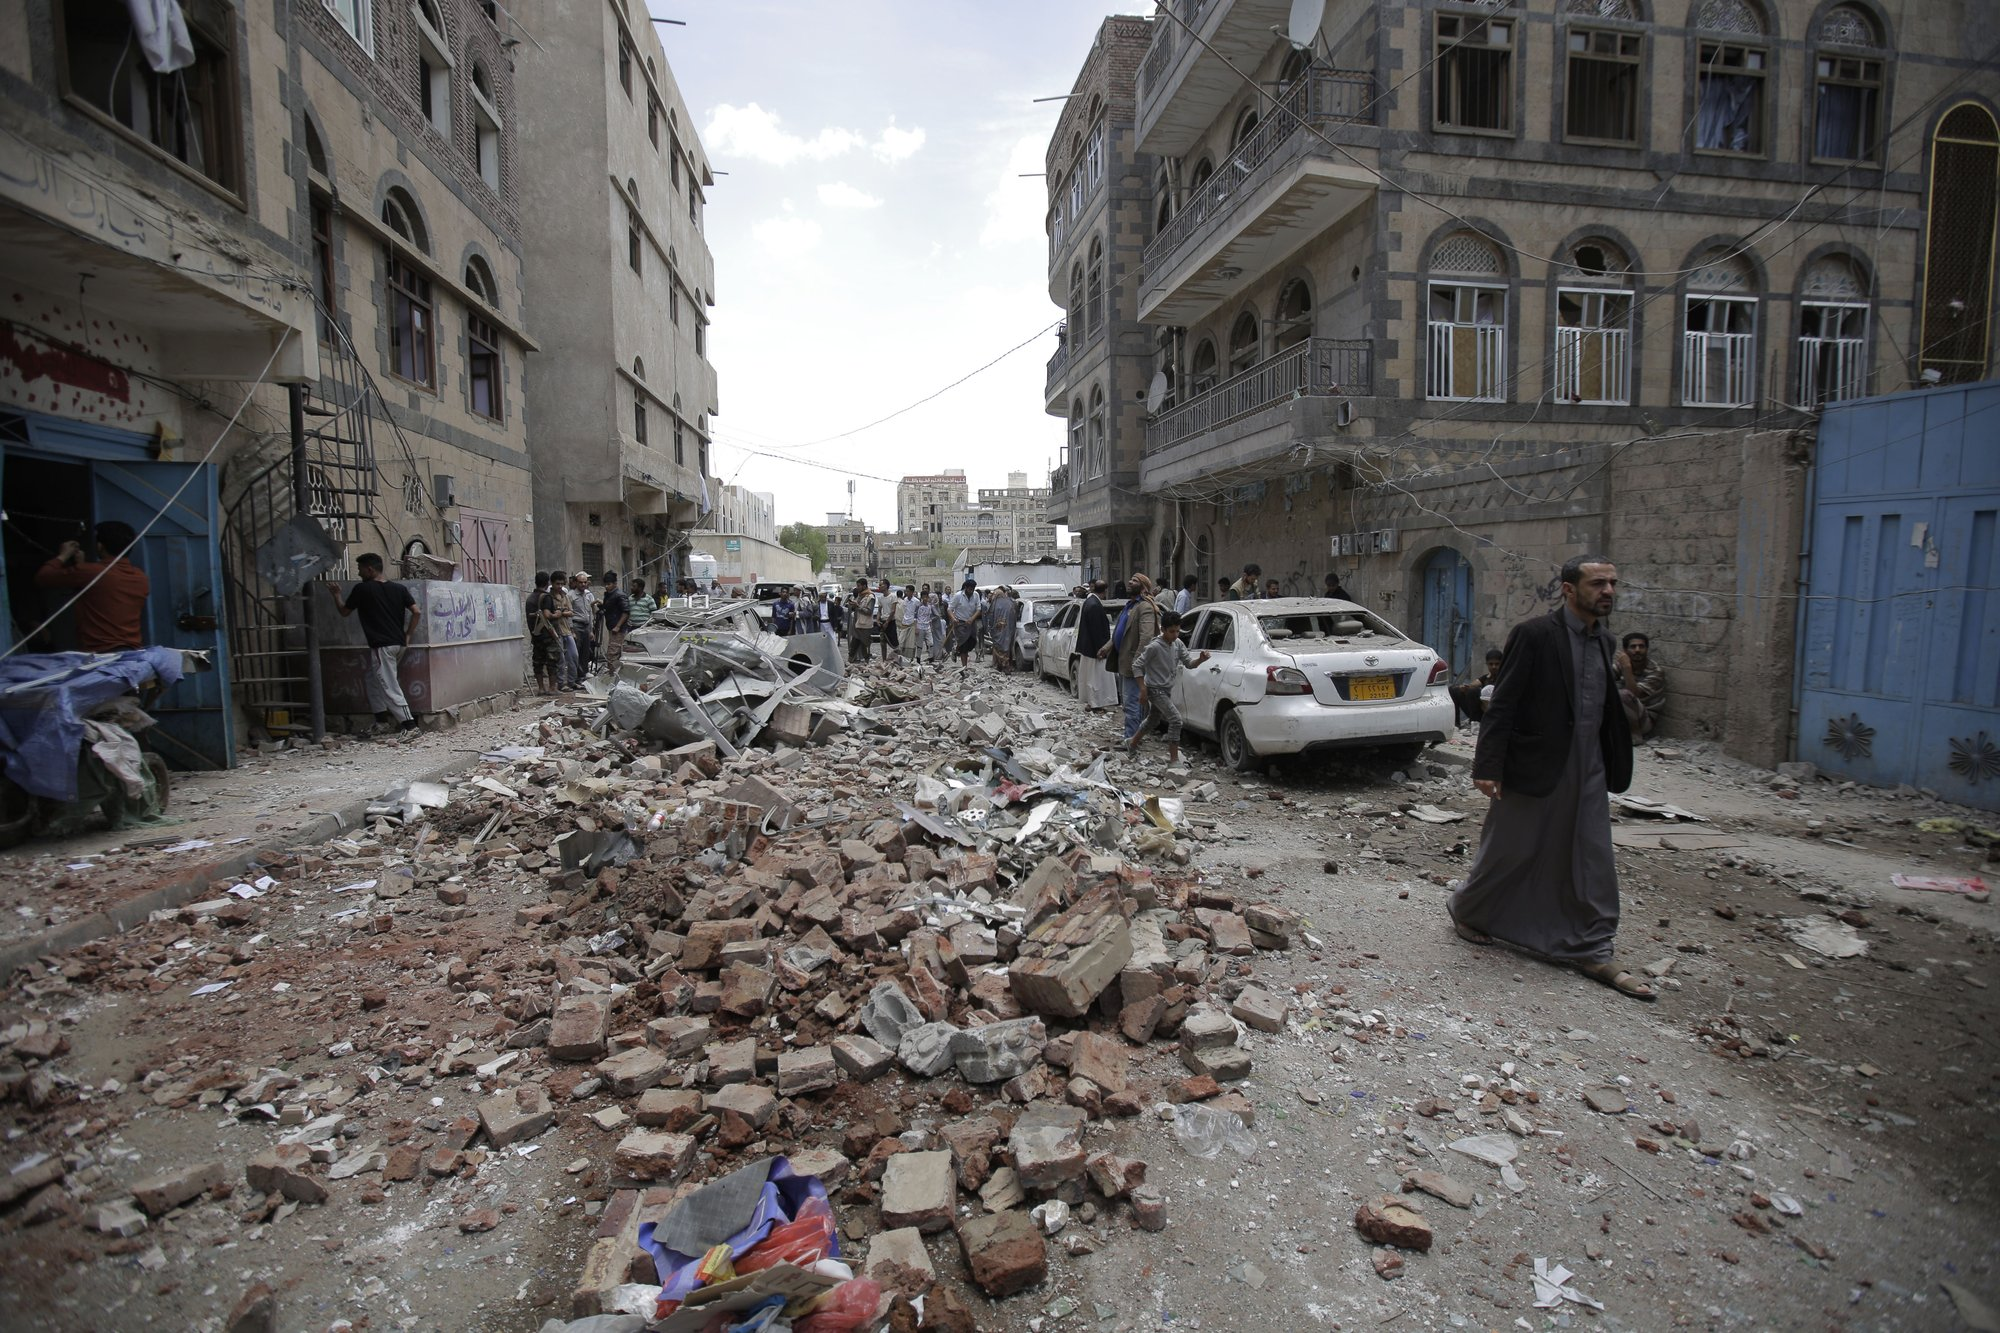 UN says civilians targeted in airstrikes on Yemen's capital